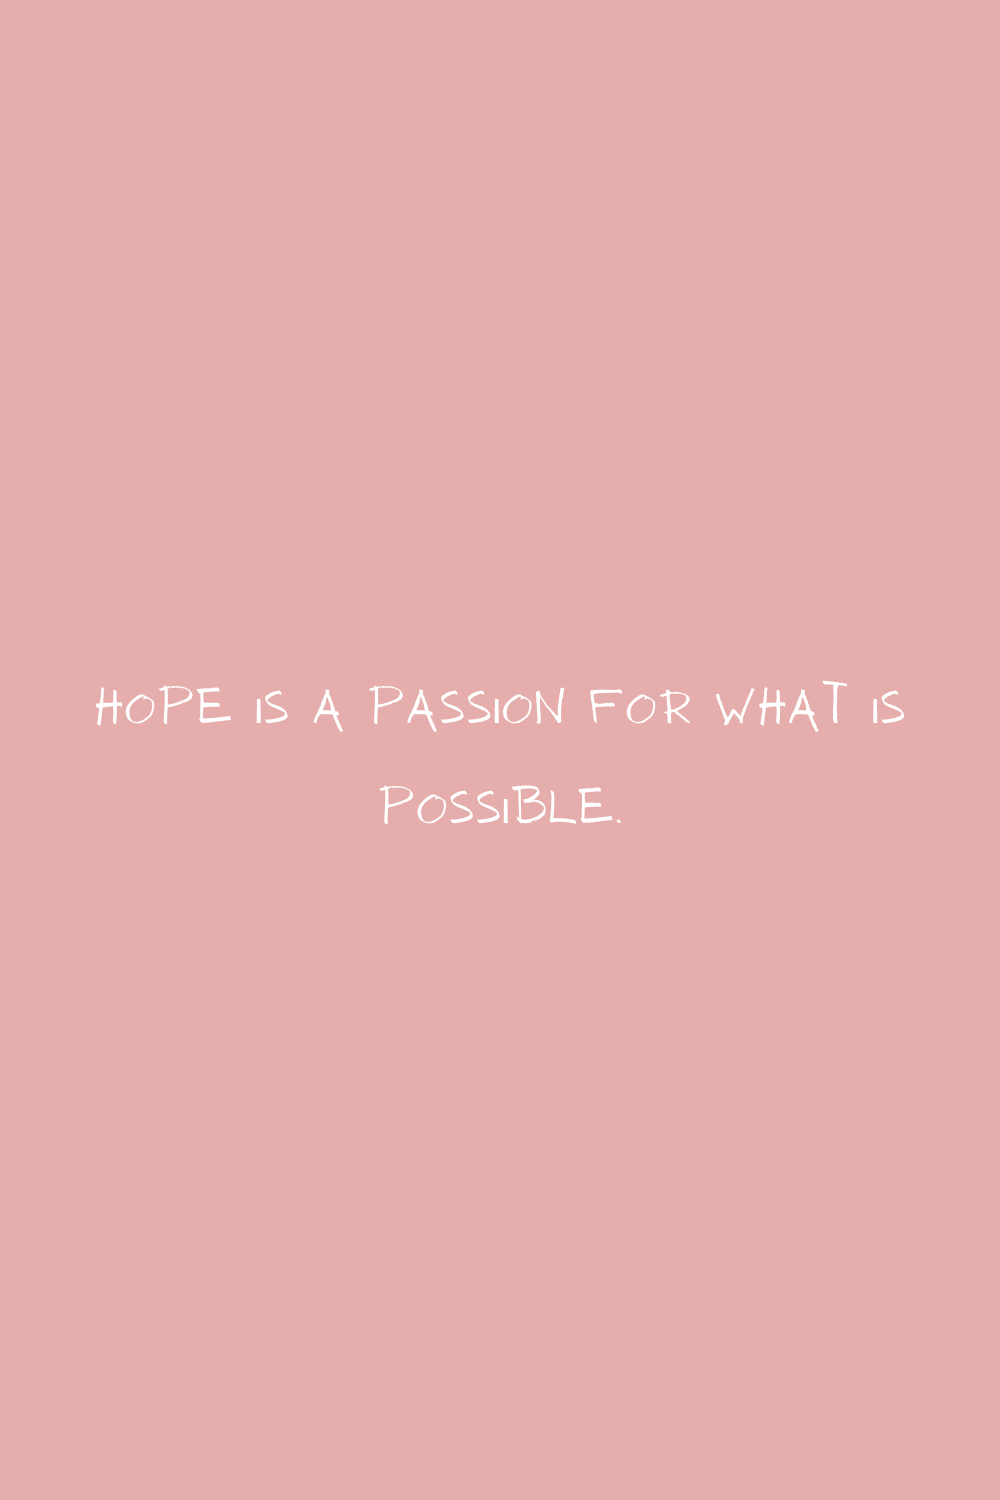 Hope Quotes For Passion